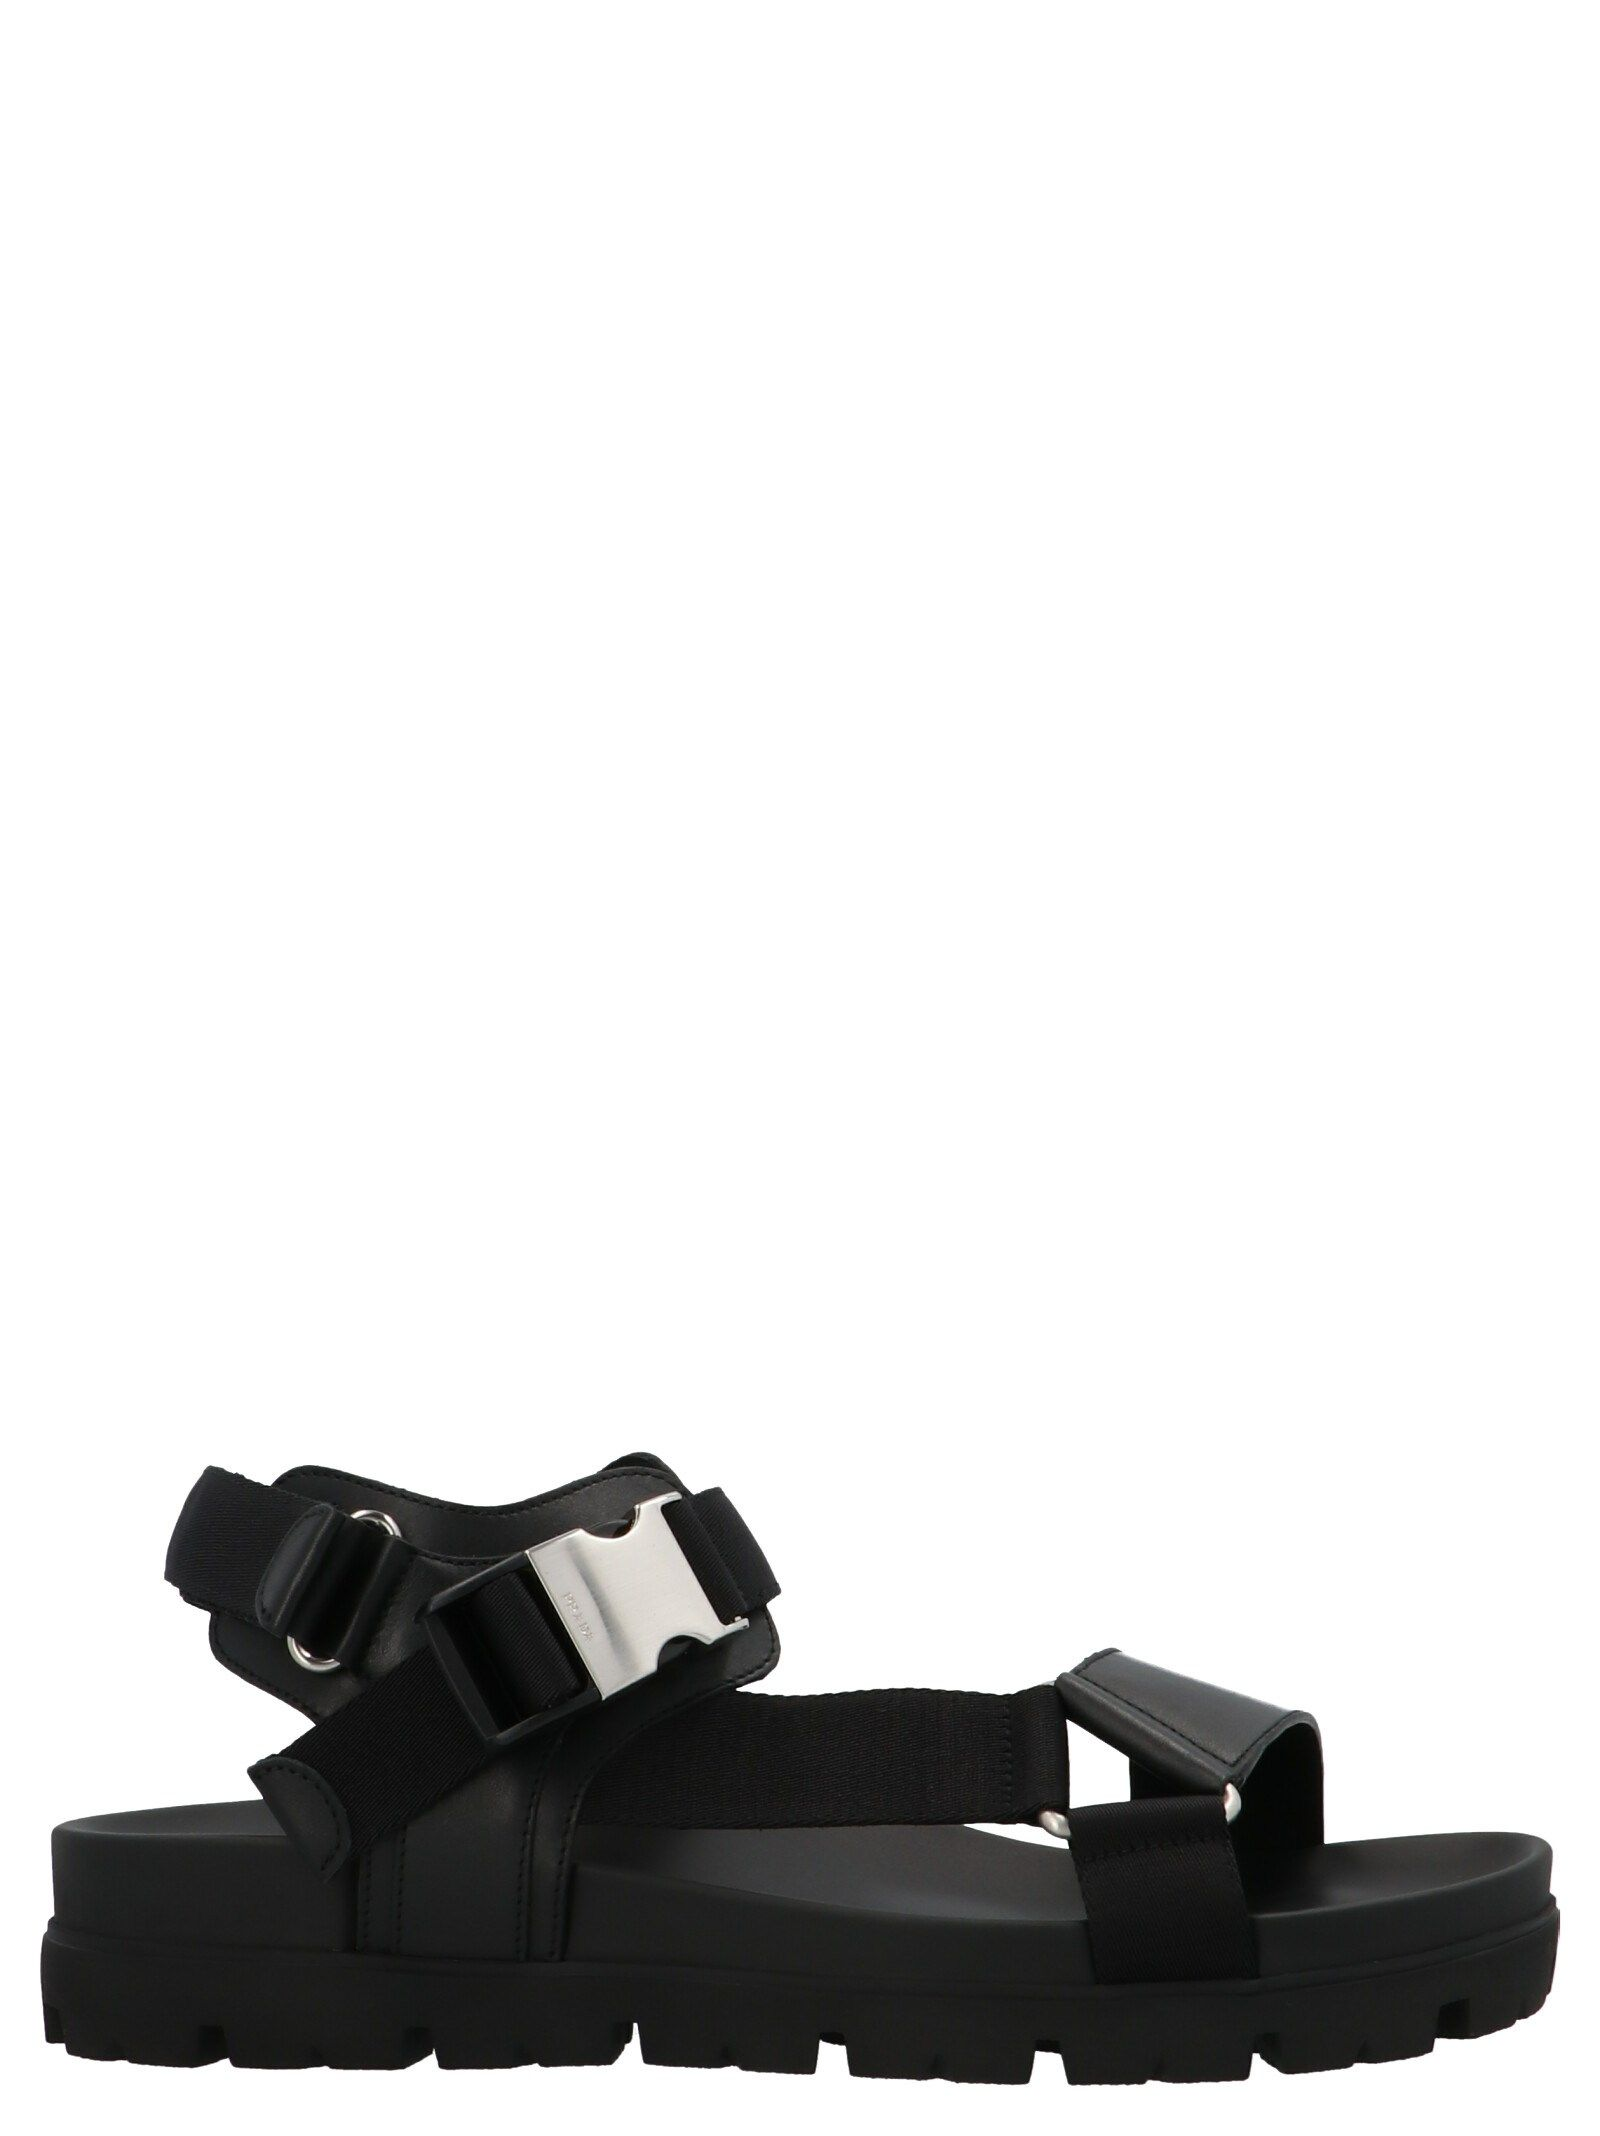 Prada PRADA MEN'S BLACK OTHER MATERIALS SANDALS